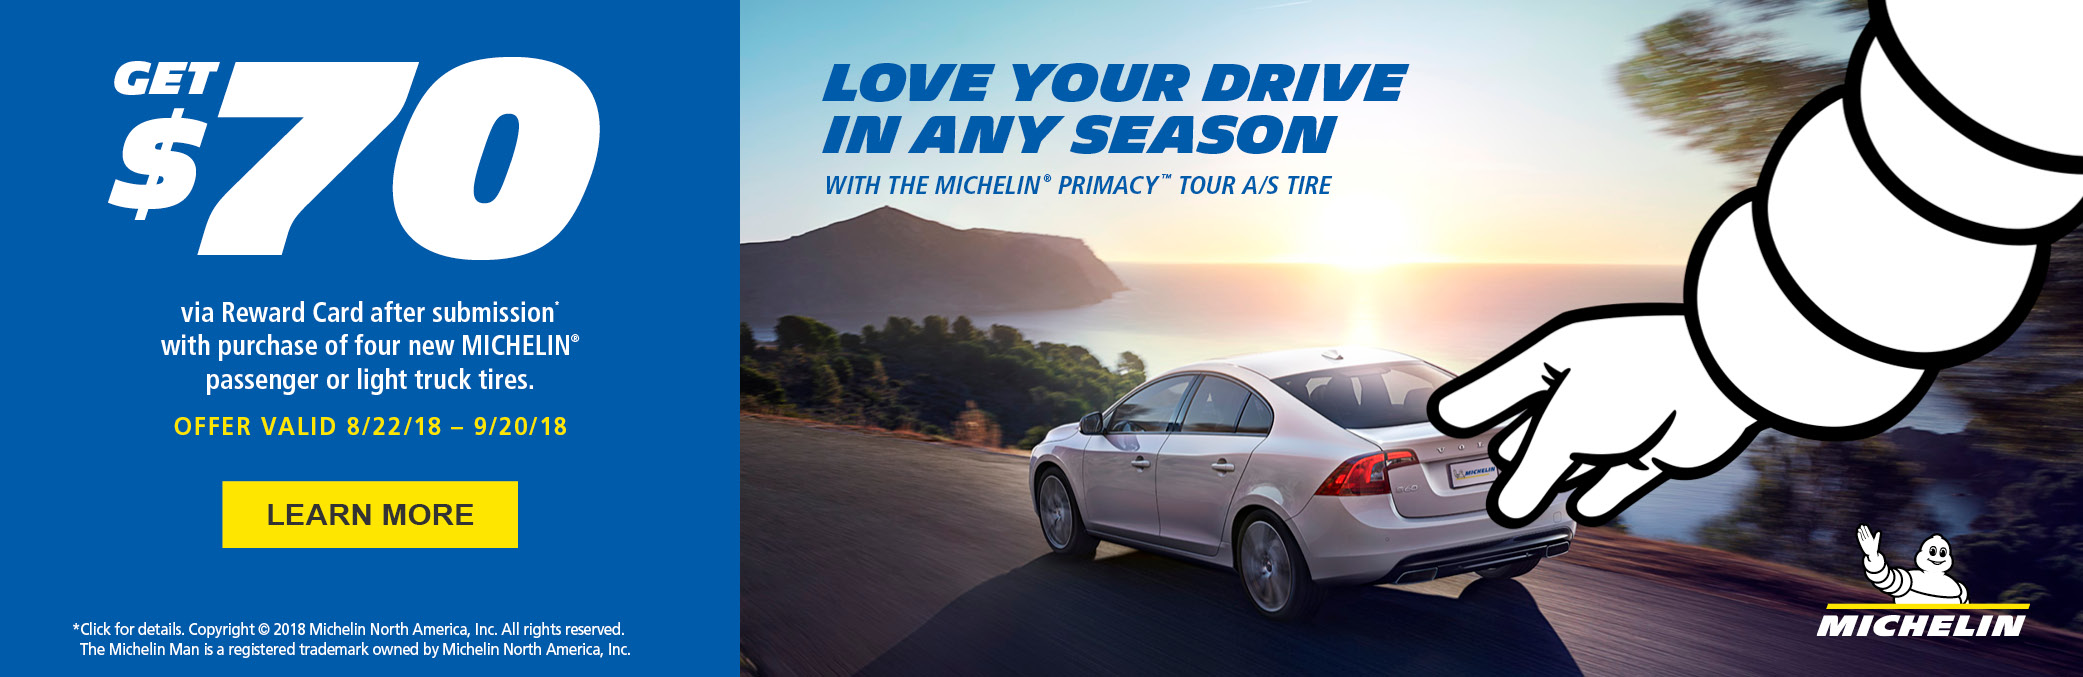 Fuel Your Passion with an Exclusive offer from Michelin! Hurry. Offer ends 10-21-18